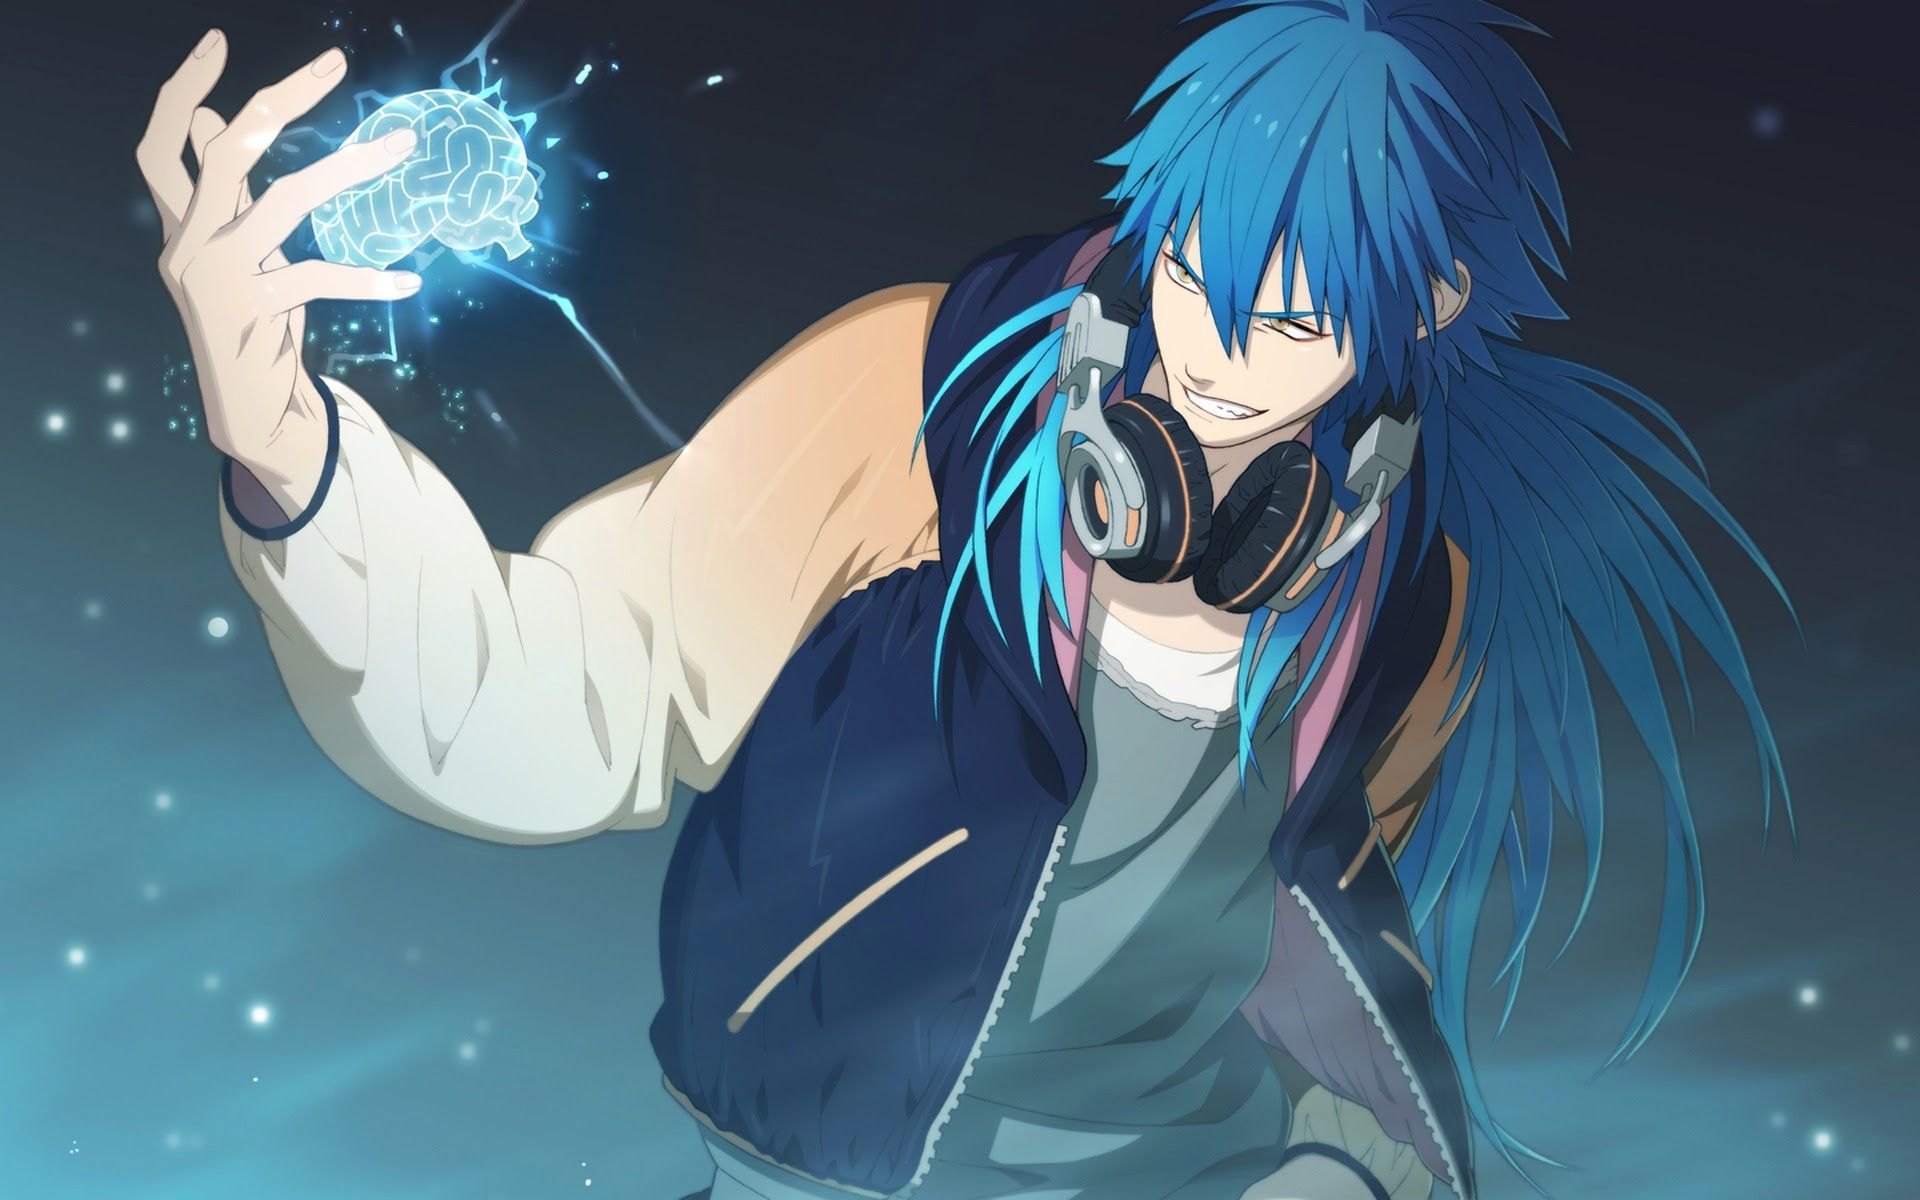 Anime Boy Wallpapers Wallpaper Cave Cool Anime Wallpapers Anime Wallpaper Download Cute Anime Wallpaper